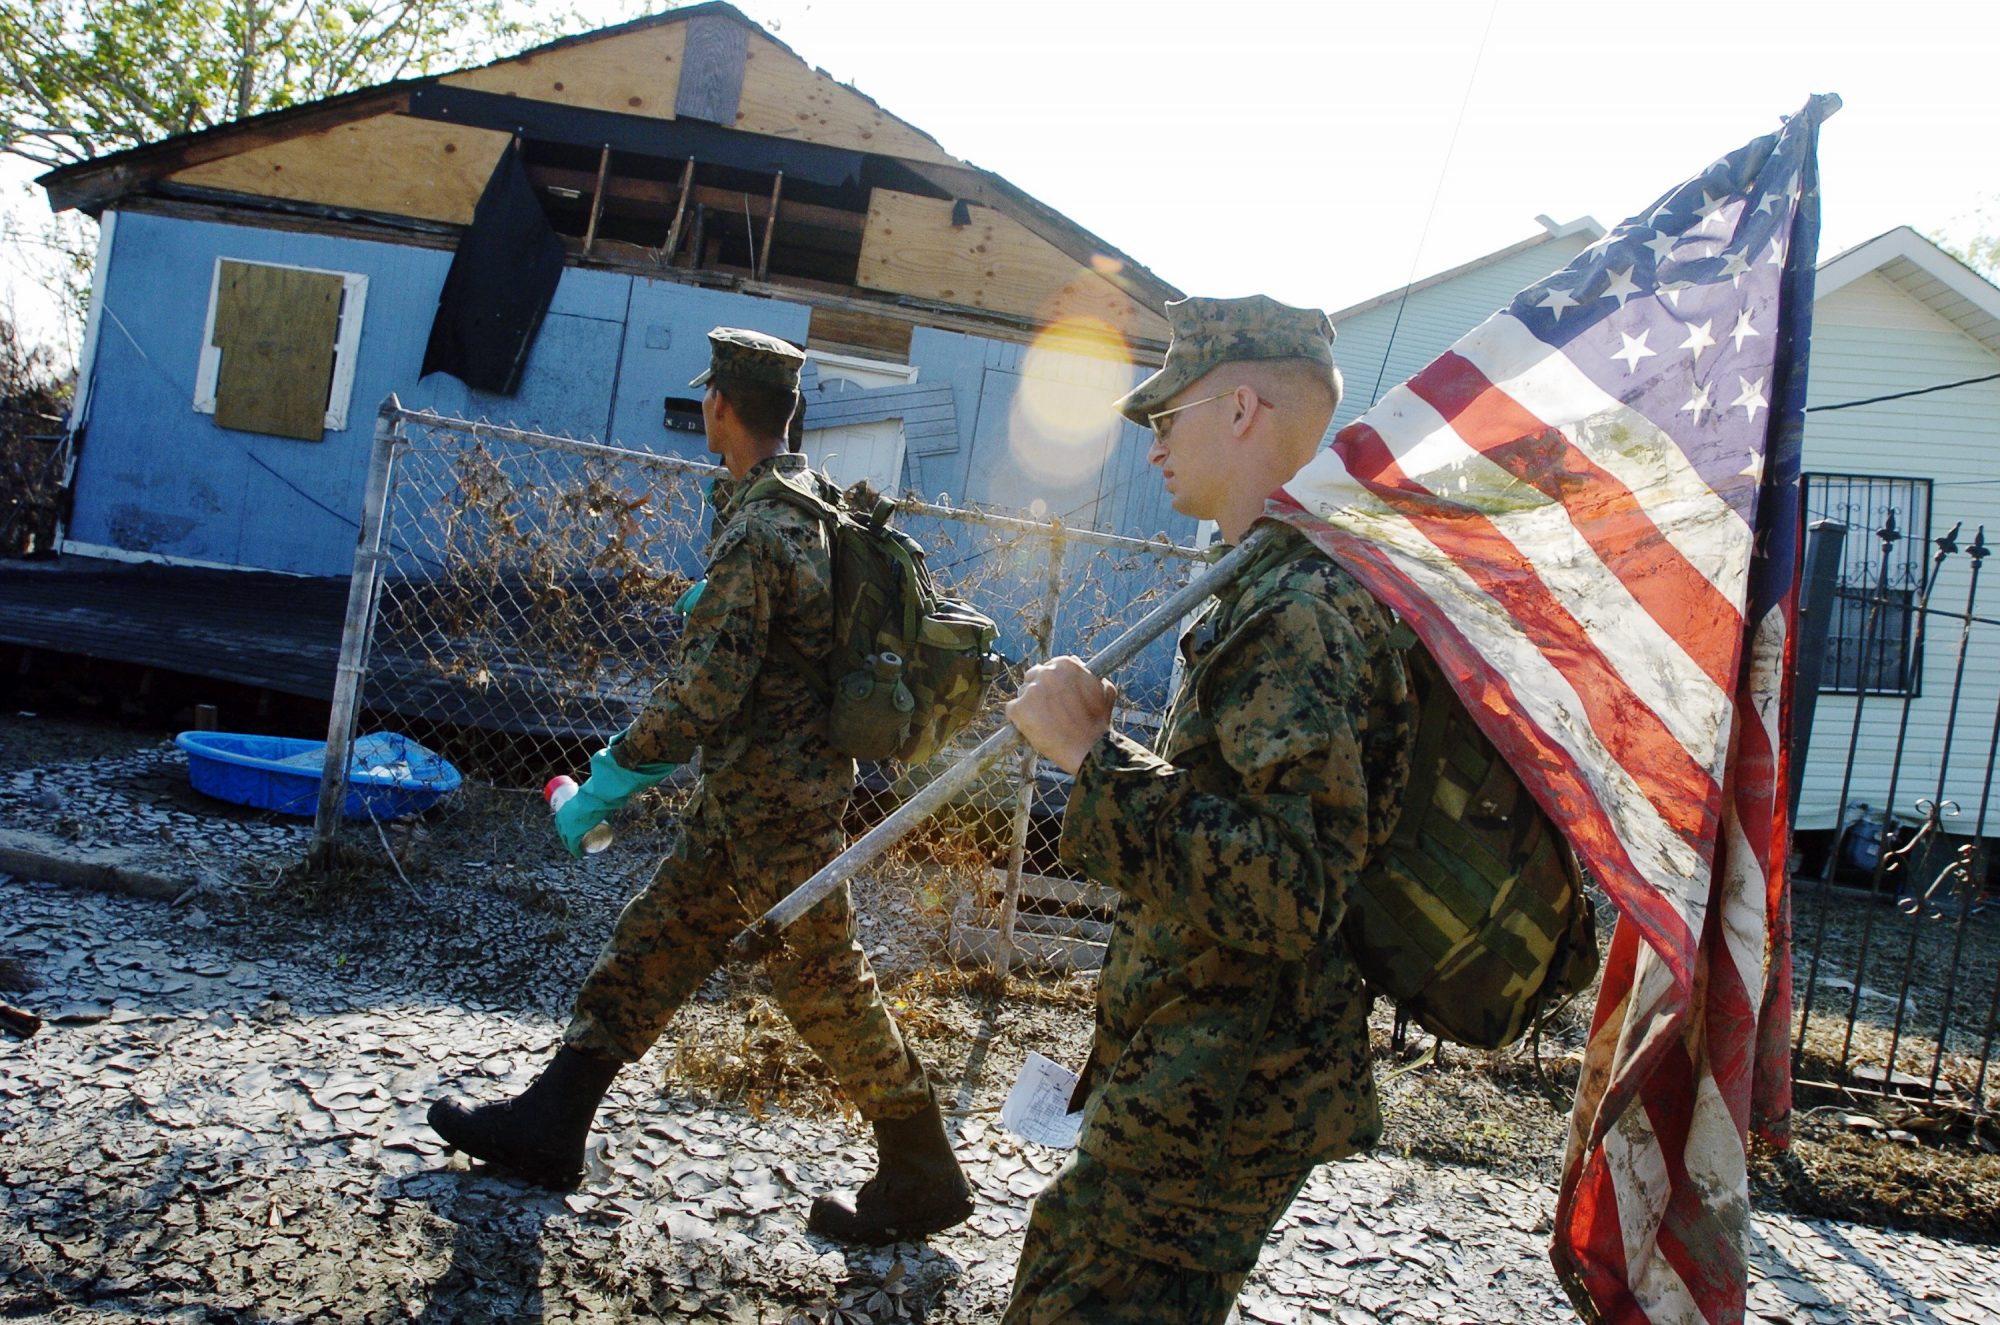 UNITED STATES - CIRCA 2002: Cpl. Karl Krebsbach carries a tattered and muddied American flag he found as he and other Marines from Camp Lejeune, N.C., patrol a Lower Ninth Ward neighborhood for a second time to search for signs of life in the aftermath of Hurricane Katrina. (Photo by Linda Rosier/NY Daily News Archive via Getty Images)